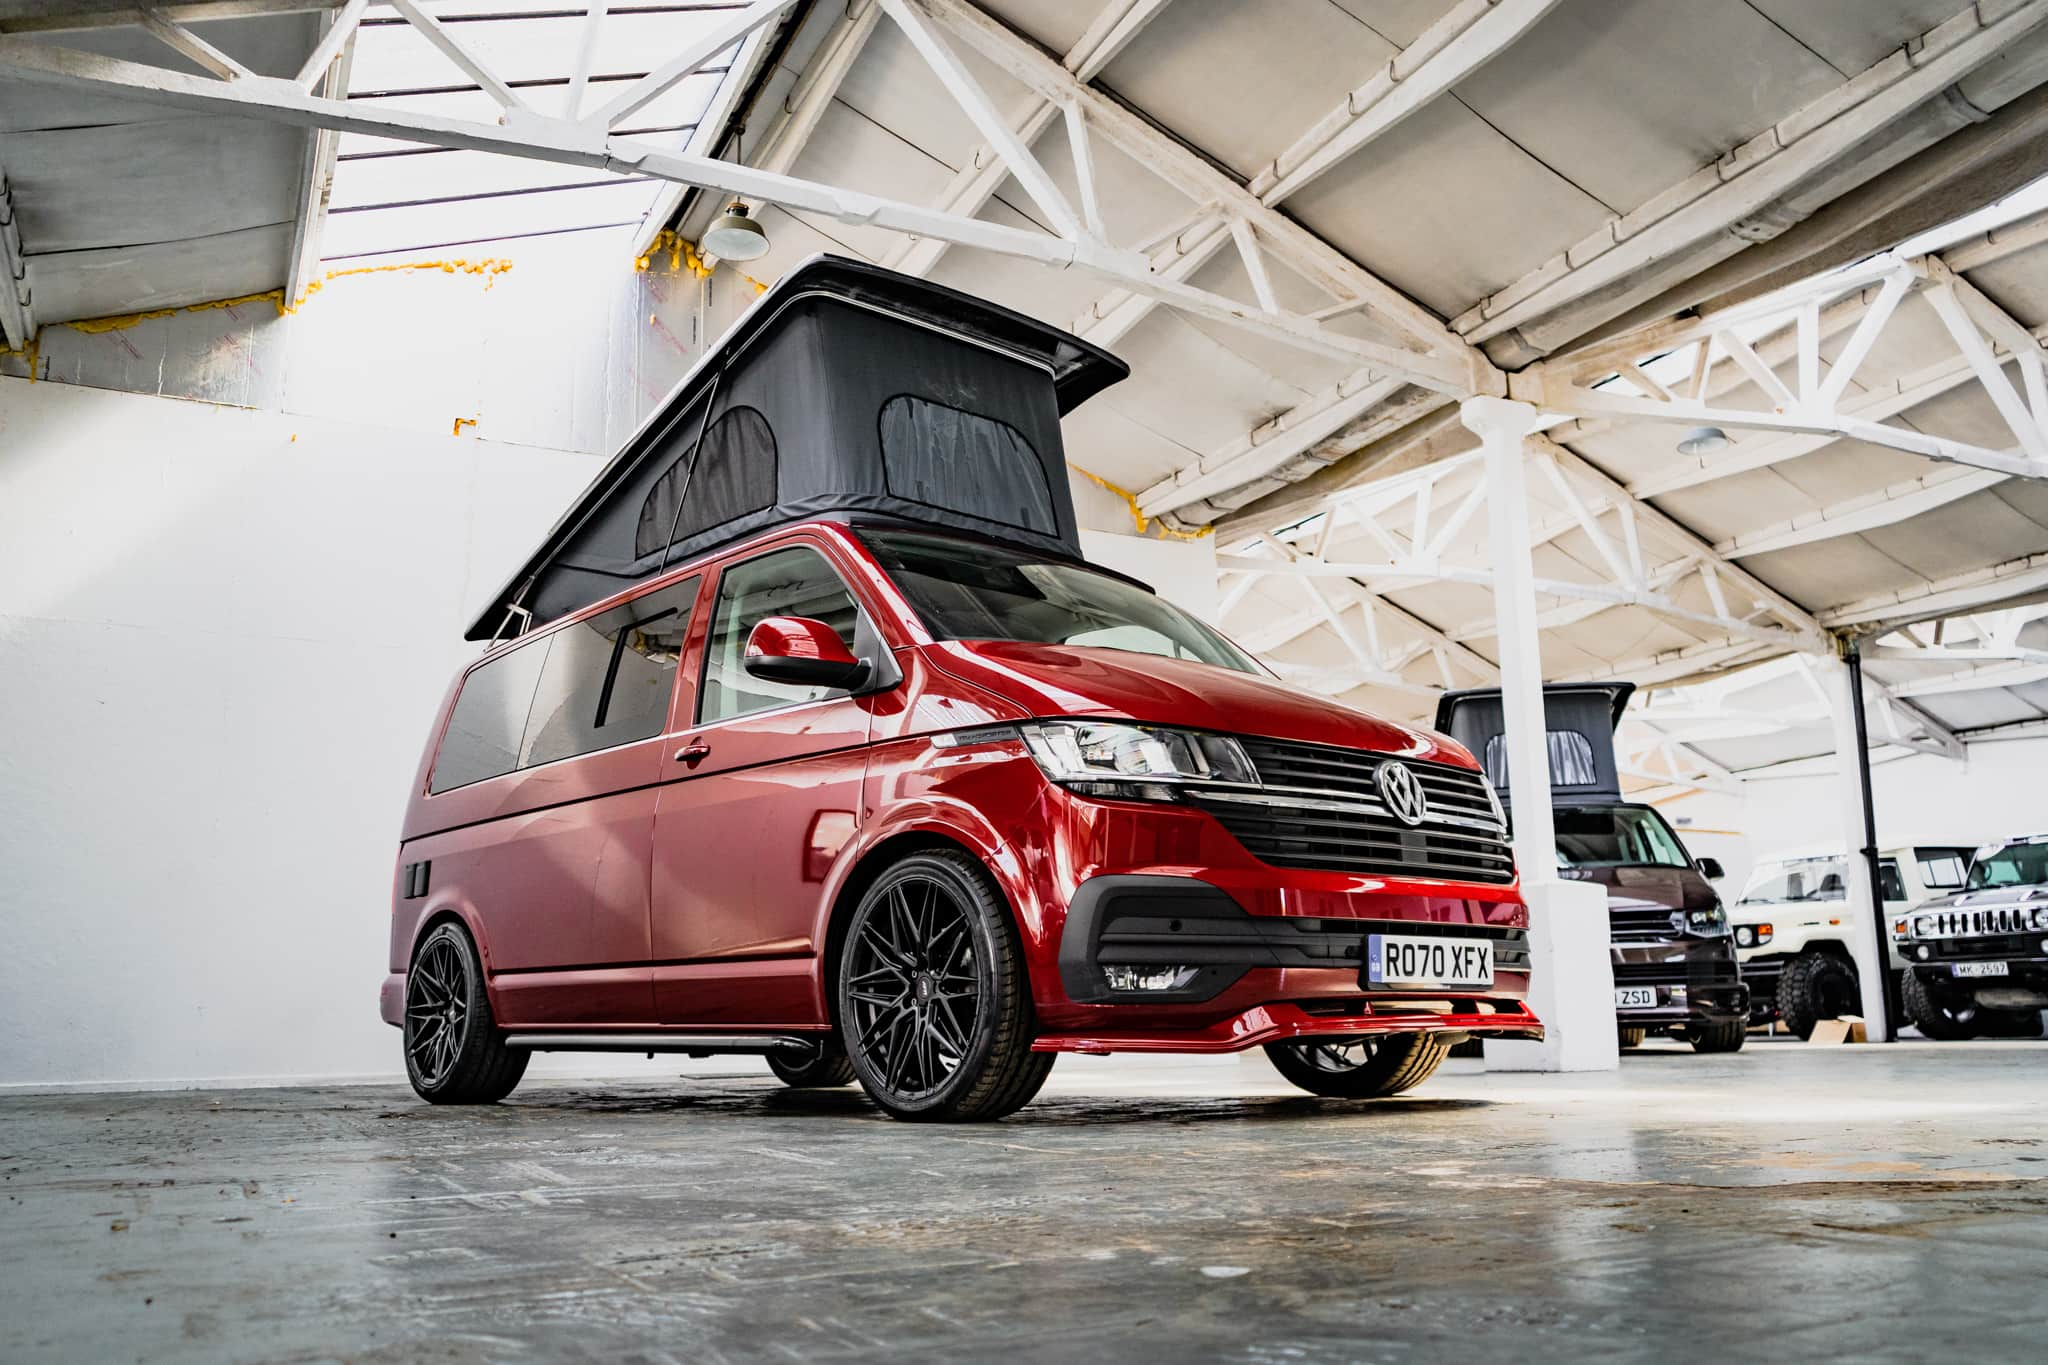 VW T6.1 Highline - Candy Red Camper with Pop Top Roof - 20th September